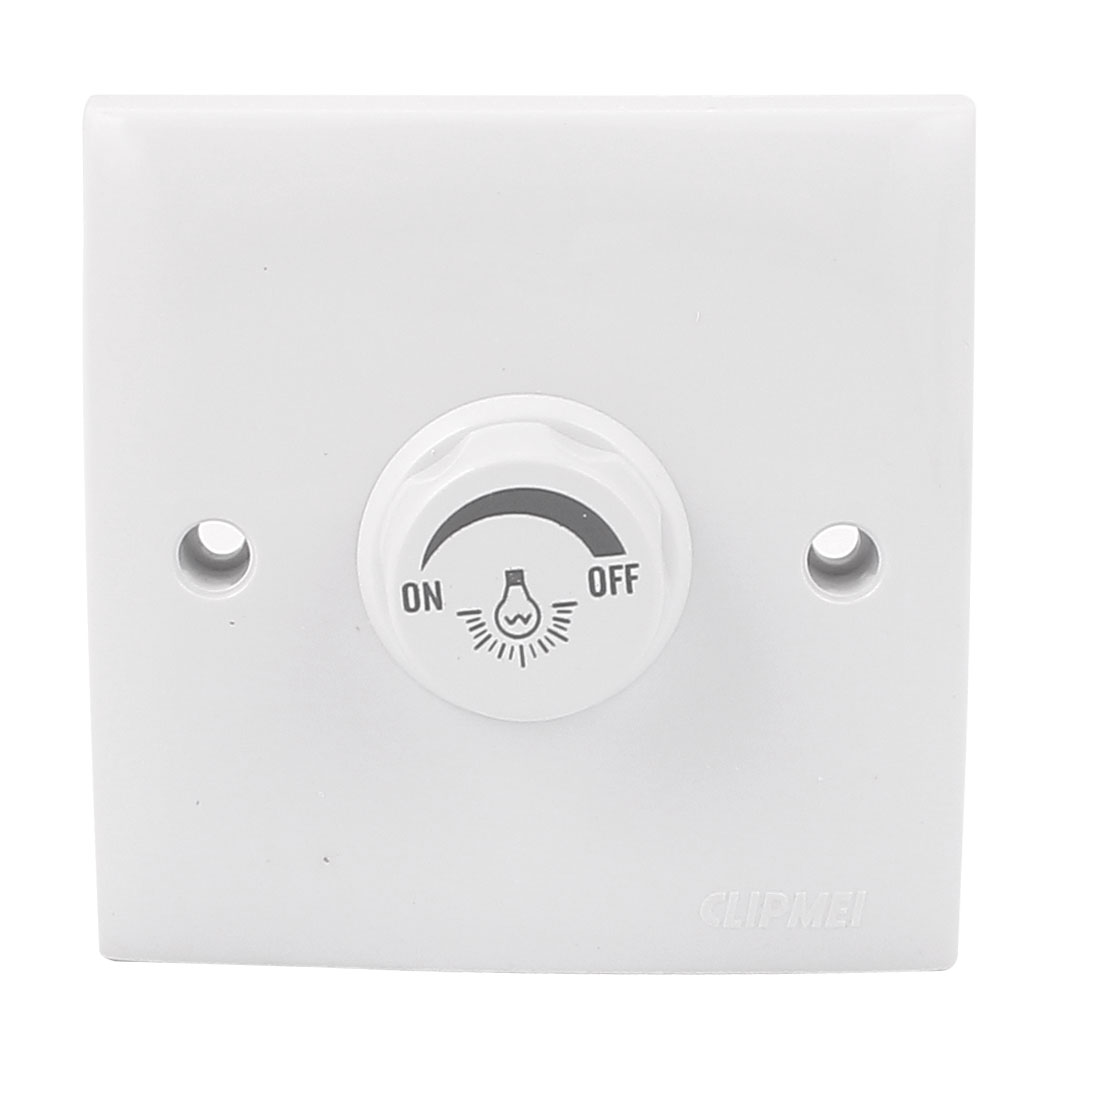 AC 200-250V White Wall Panle Plate LED Lamp Light Dimmer Control Switch w 24-55V 300mA LED Driver